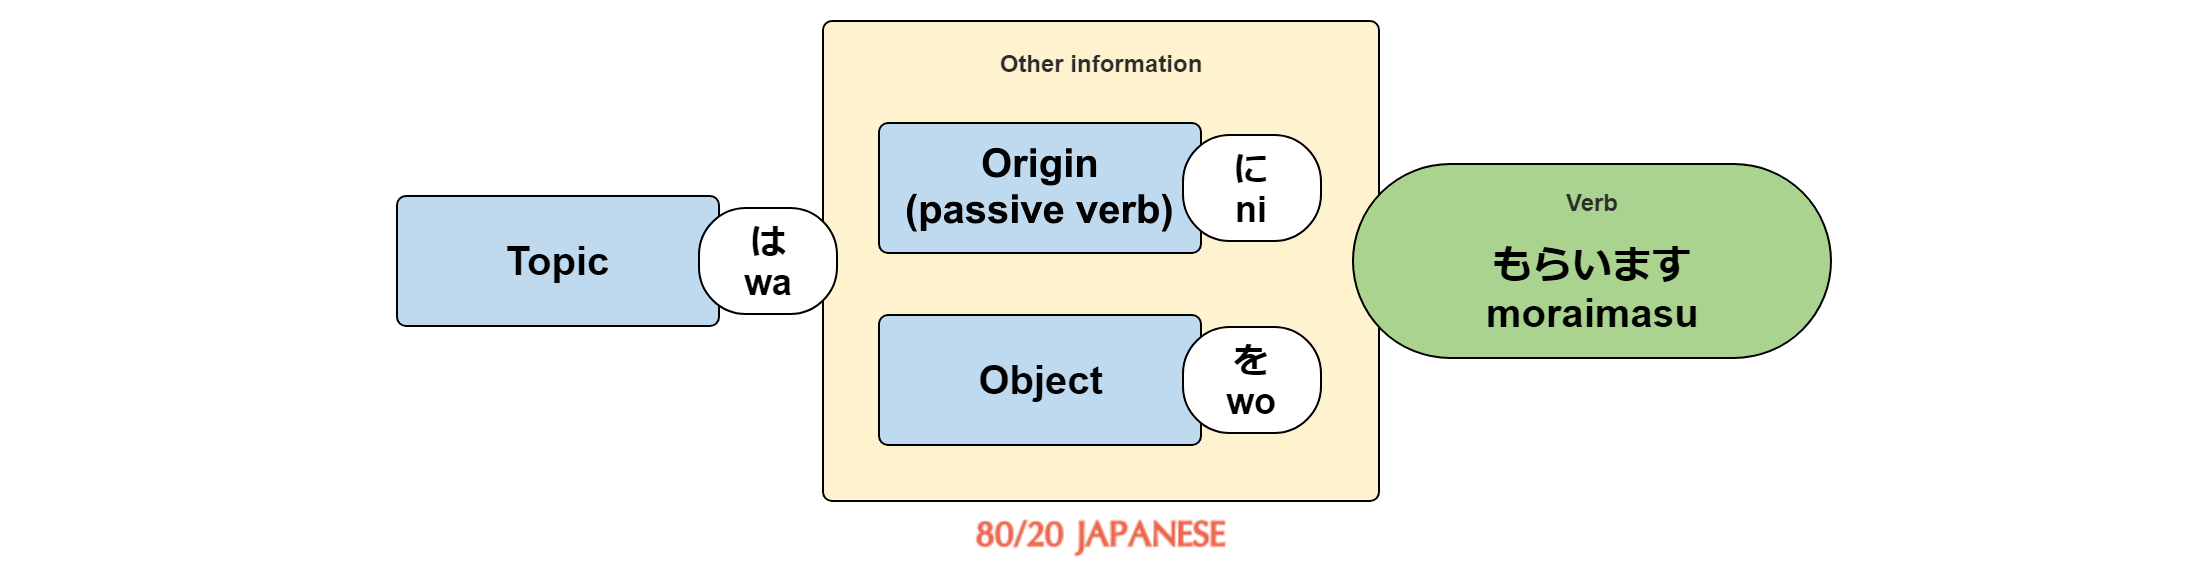 [topic] wa [origin] ni [object] wo moraimasu